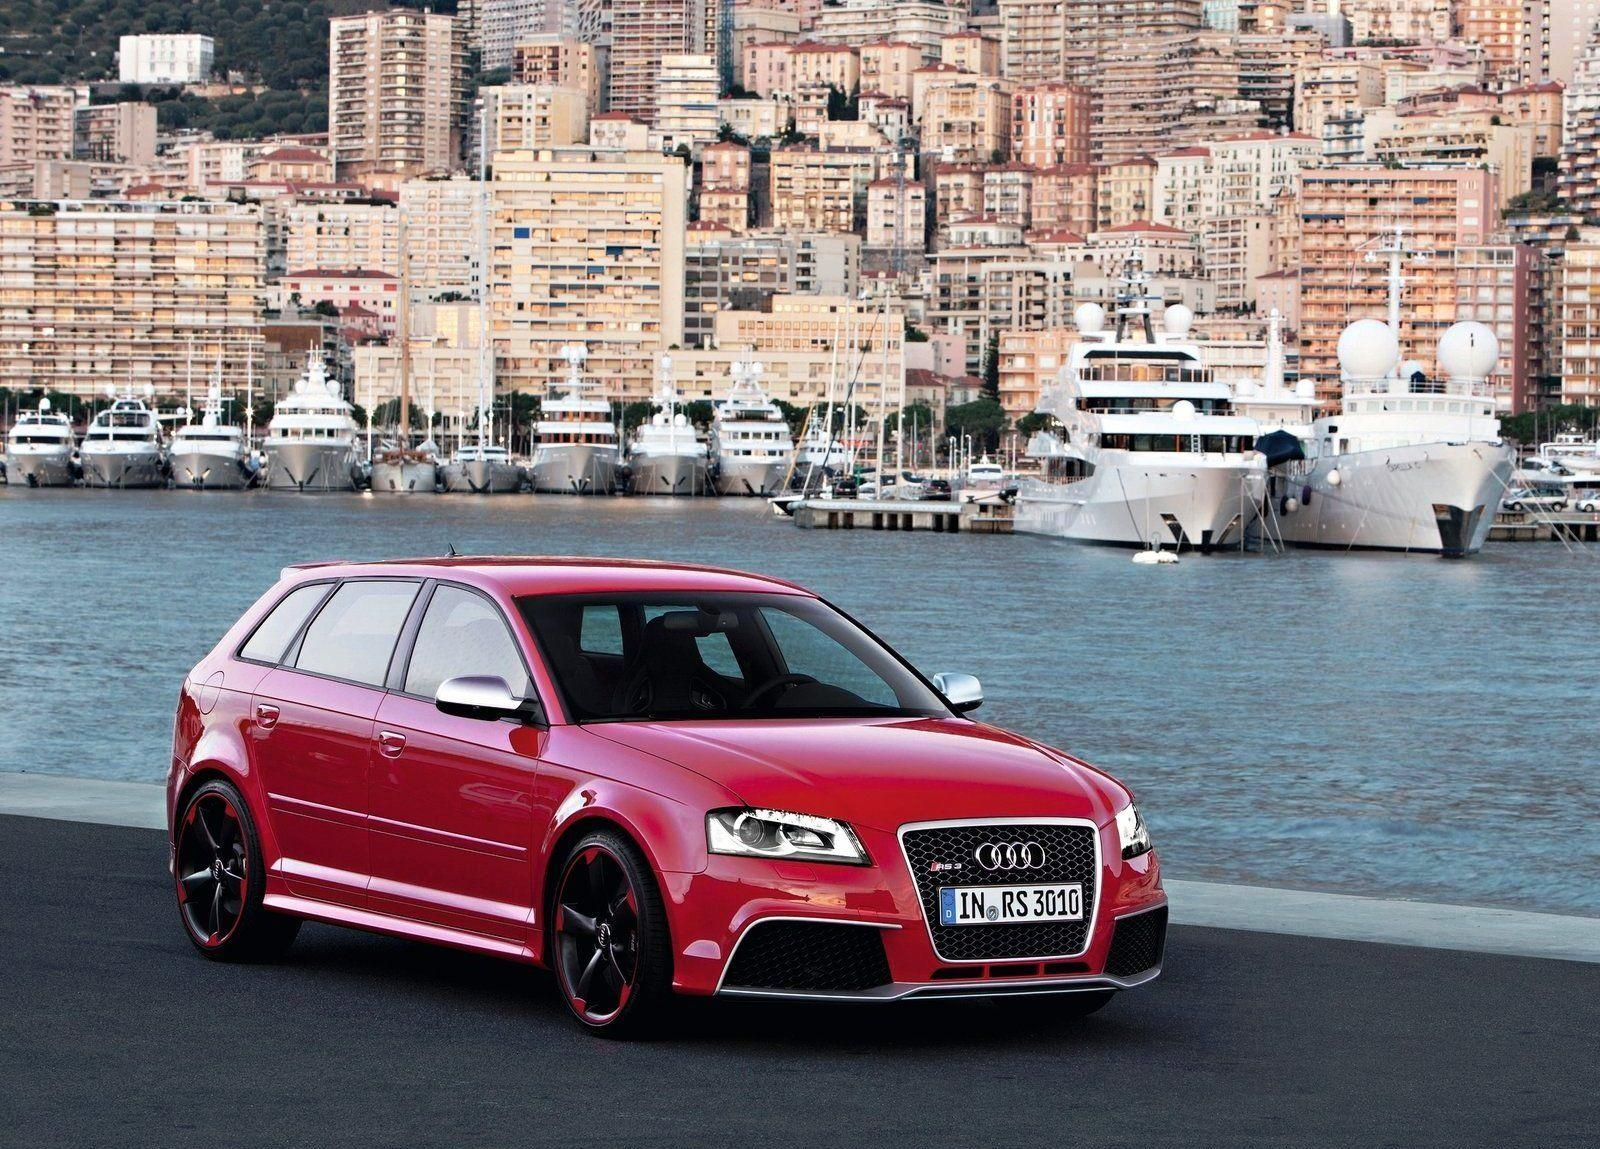 Audi RS3 Sportback - Car Pictures, Images – GaddiDekho.com